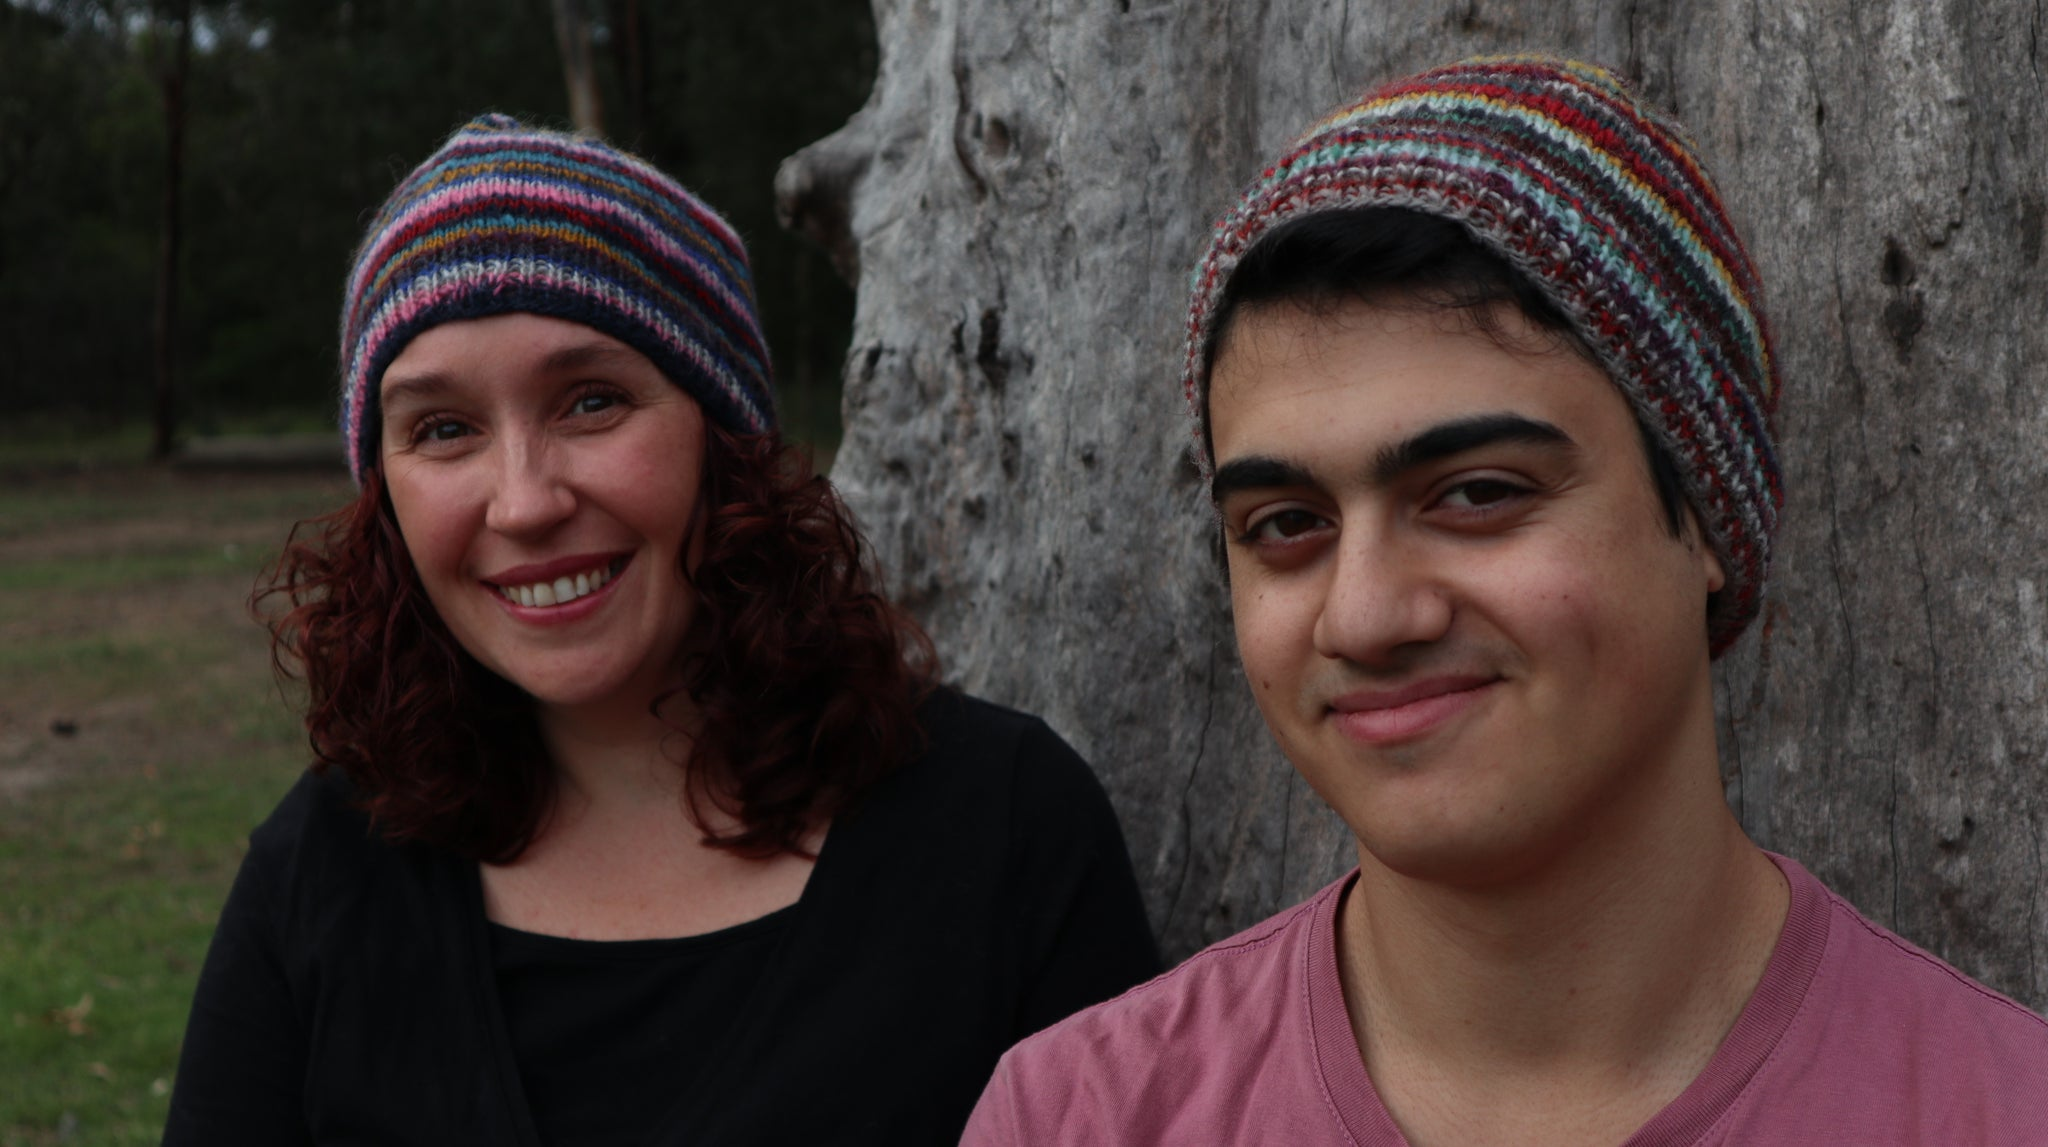 Fair Trade Ethical Woollen Beanie in a Striped Multi Coloured Design